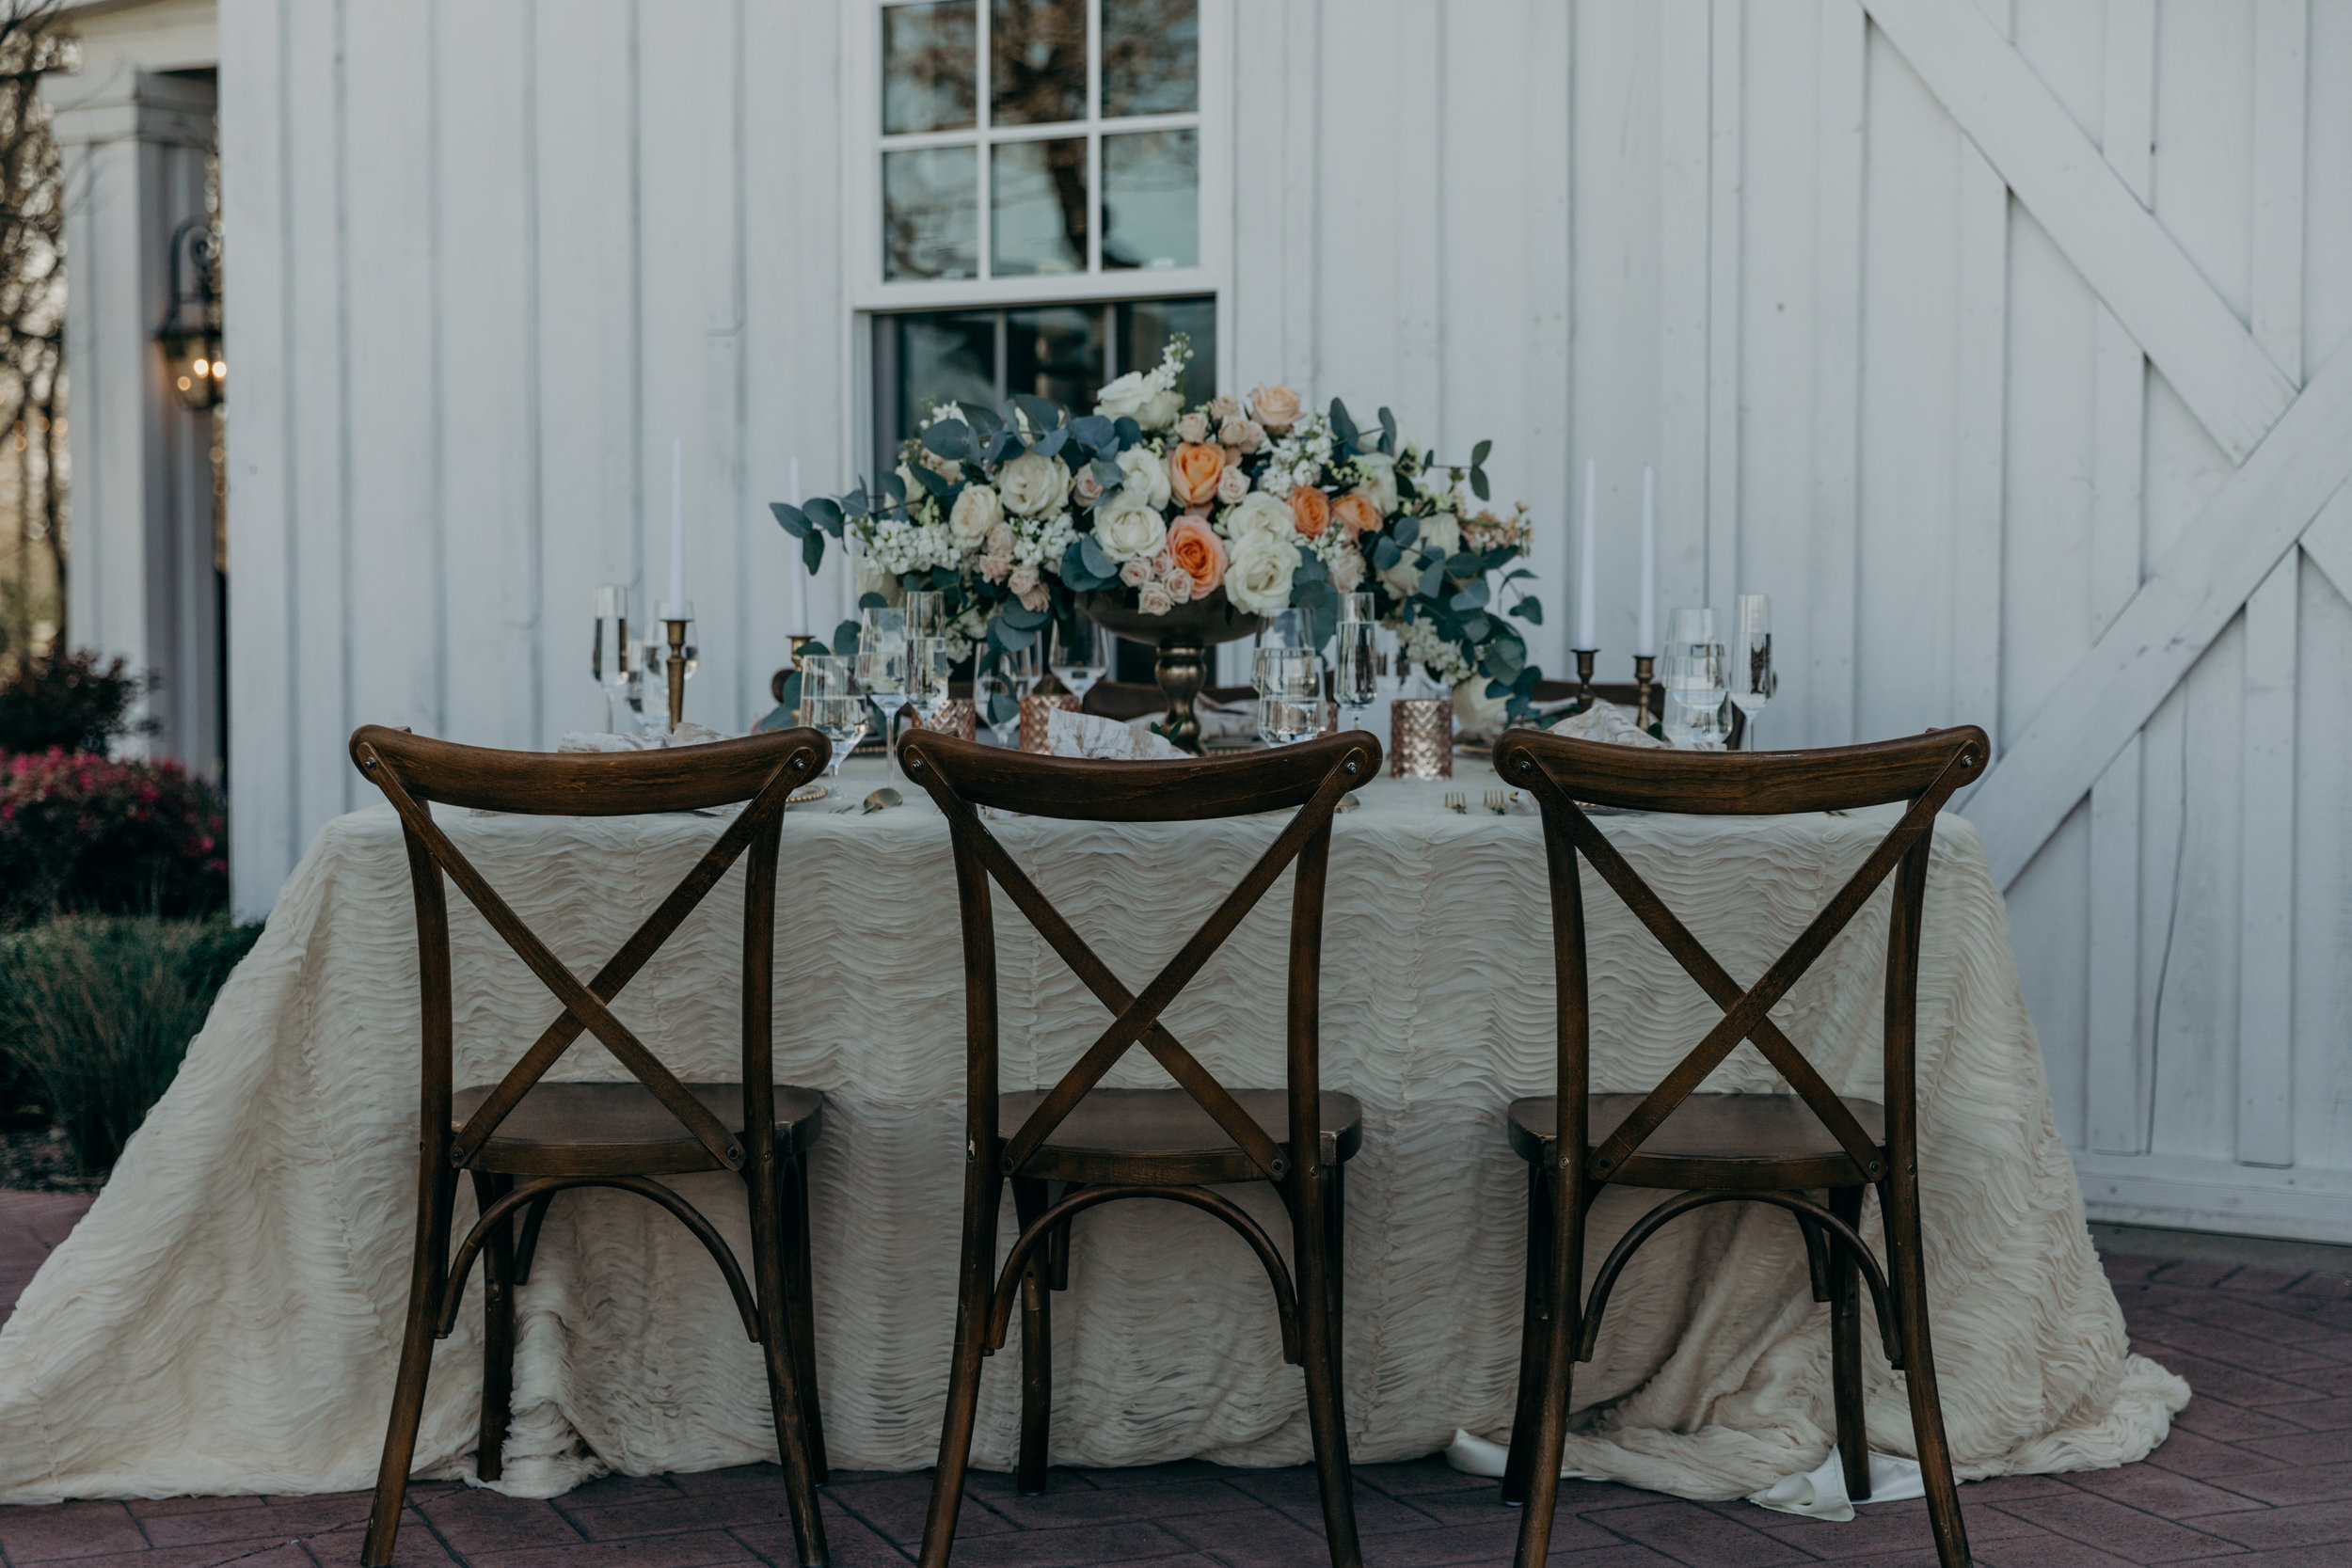 TheWhiteSparrowStyledWeddingShootinTexas-77.jpg